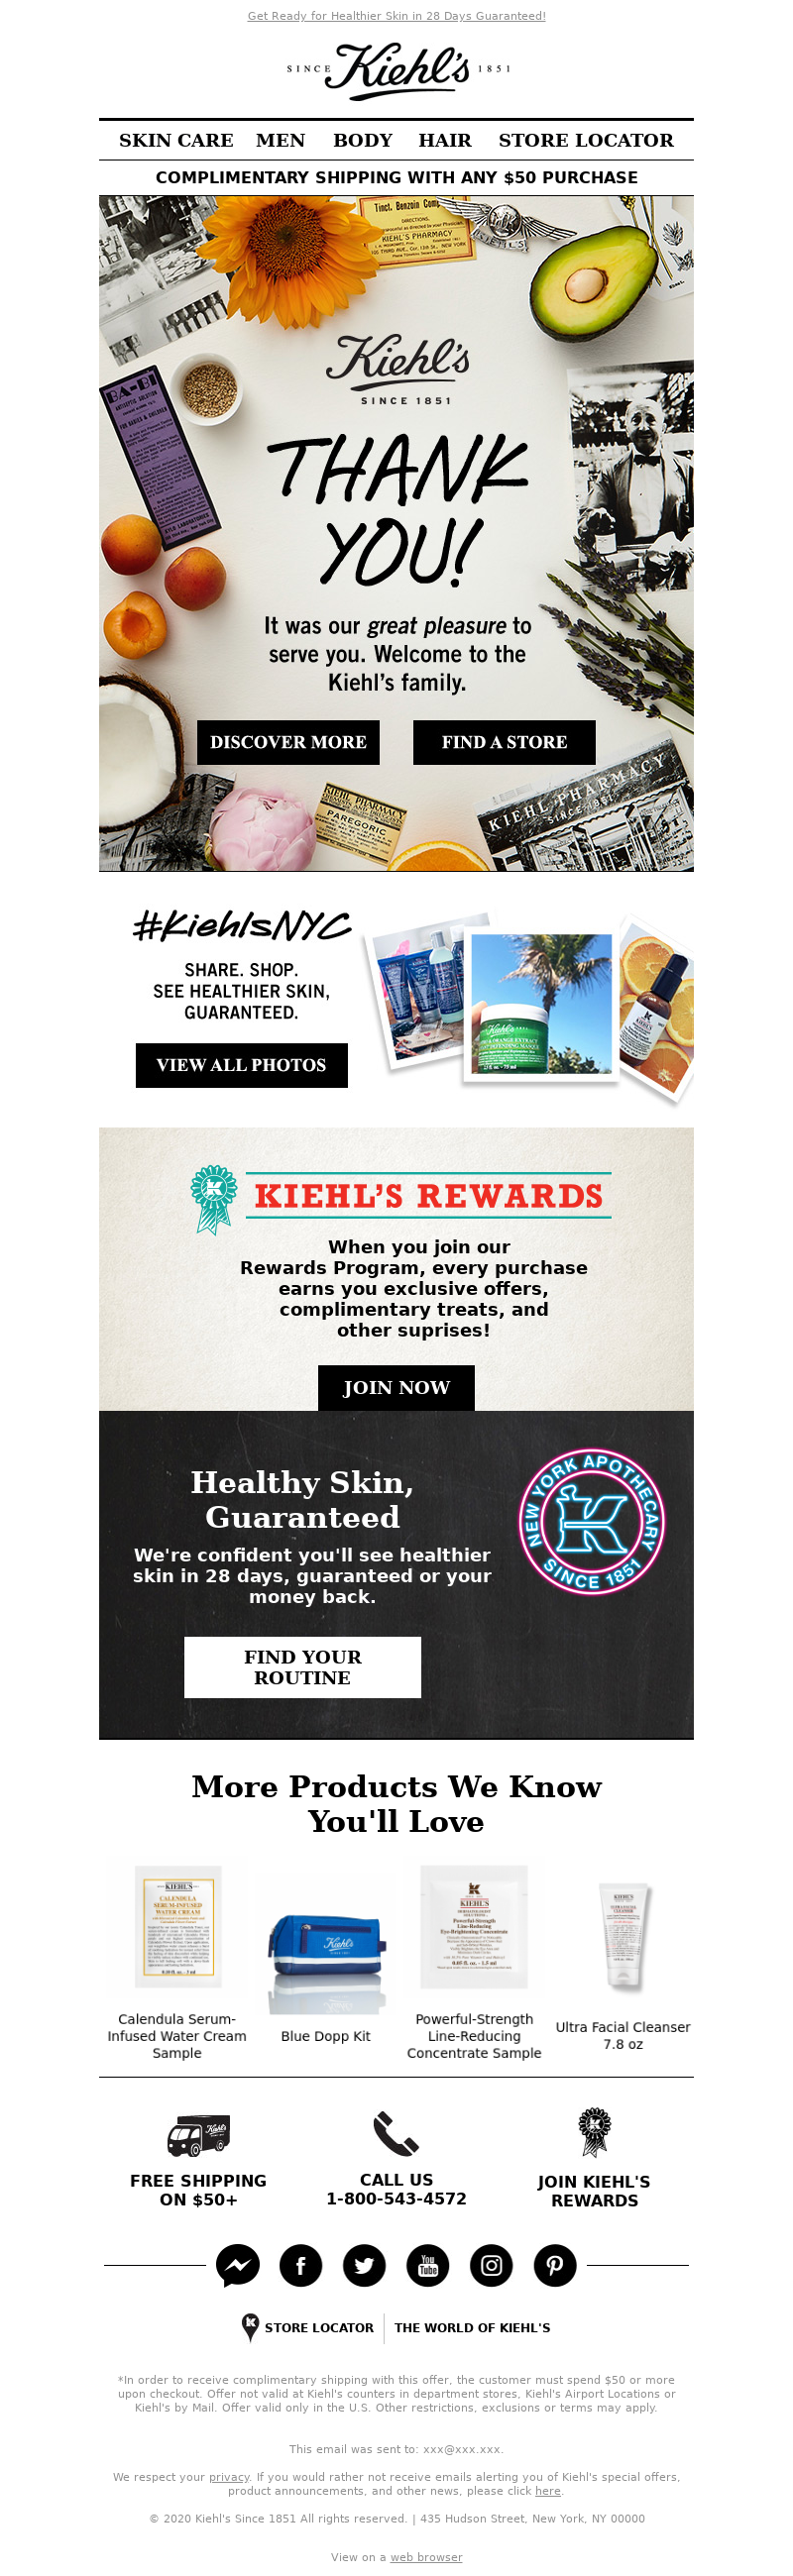 Kiehl's USA - Mailcharts, Thanks for Shopping With Us!